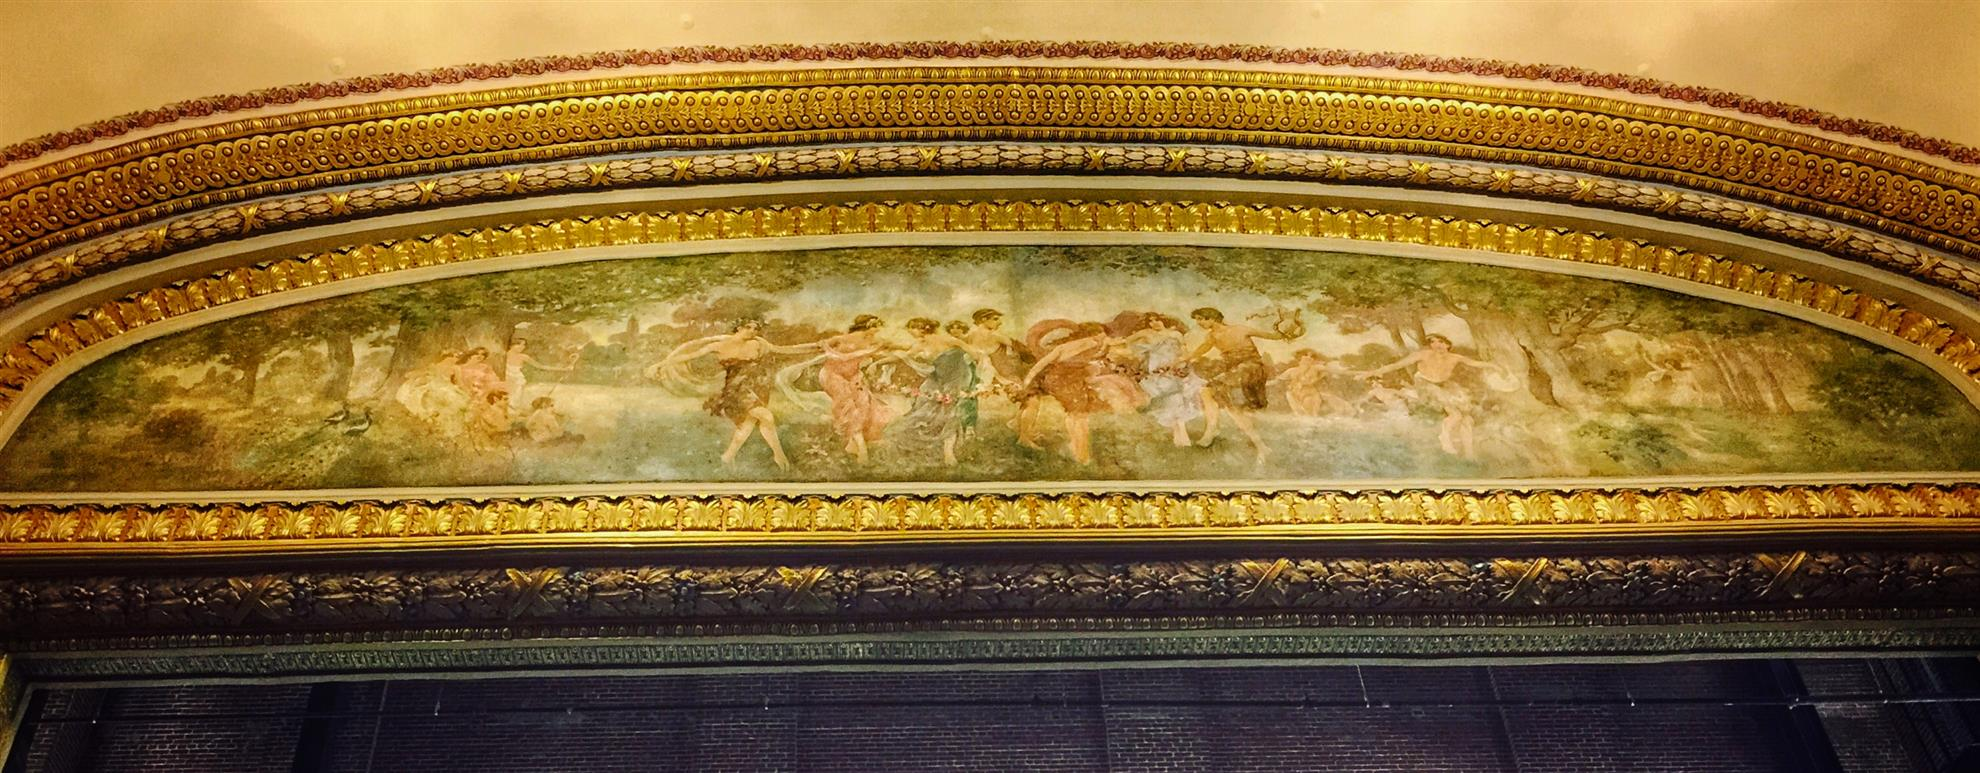 Detail of artwork over the Lyric Theatre proscenium.